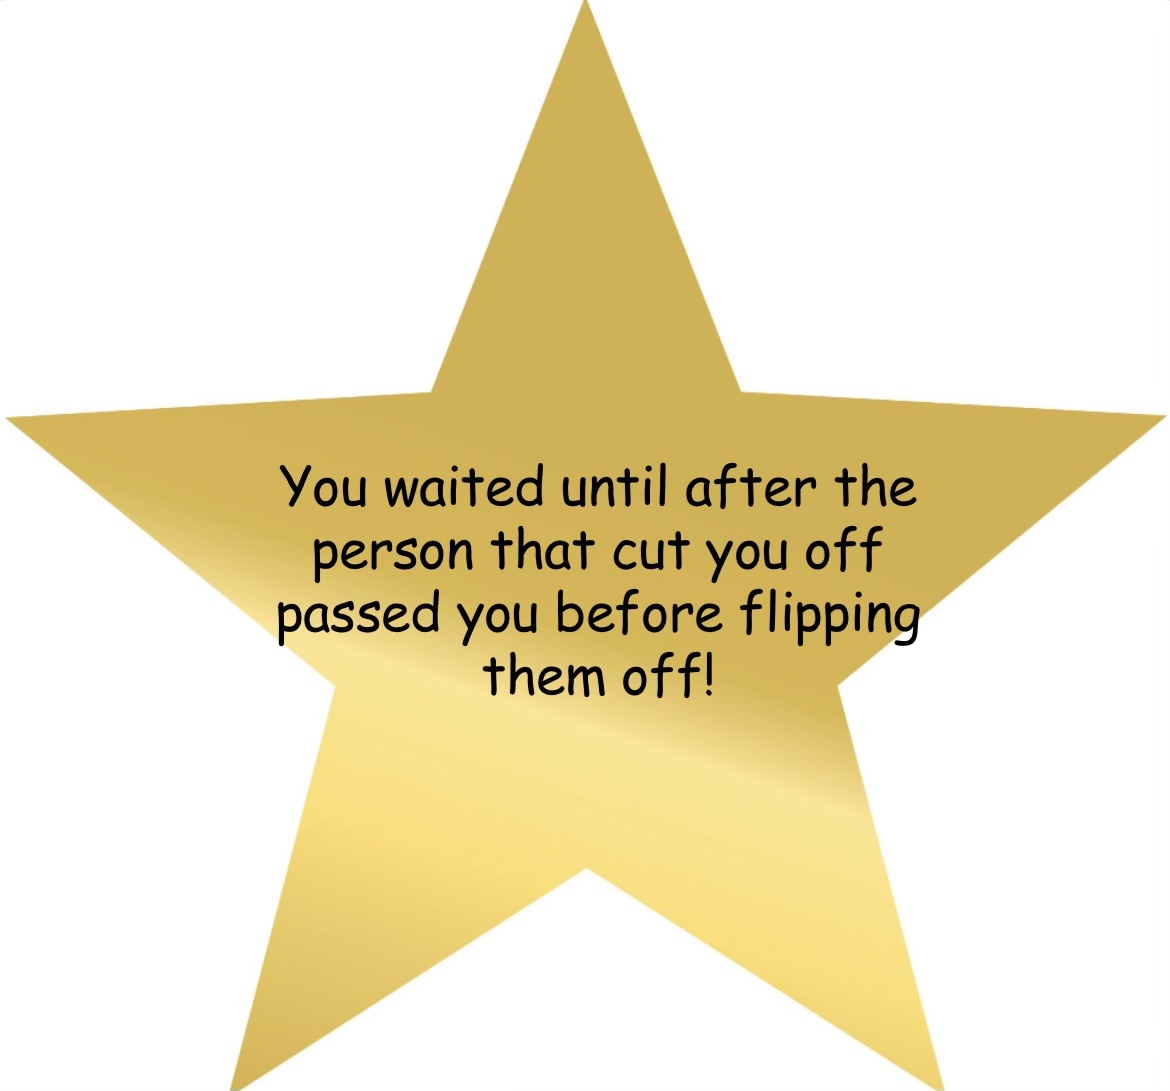 adulting award for controlling road rage and flipping off the person who cut you off after they passed